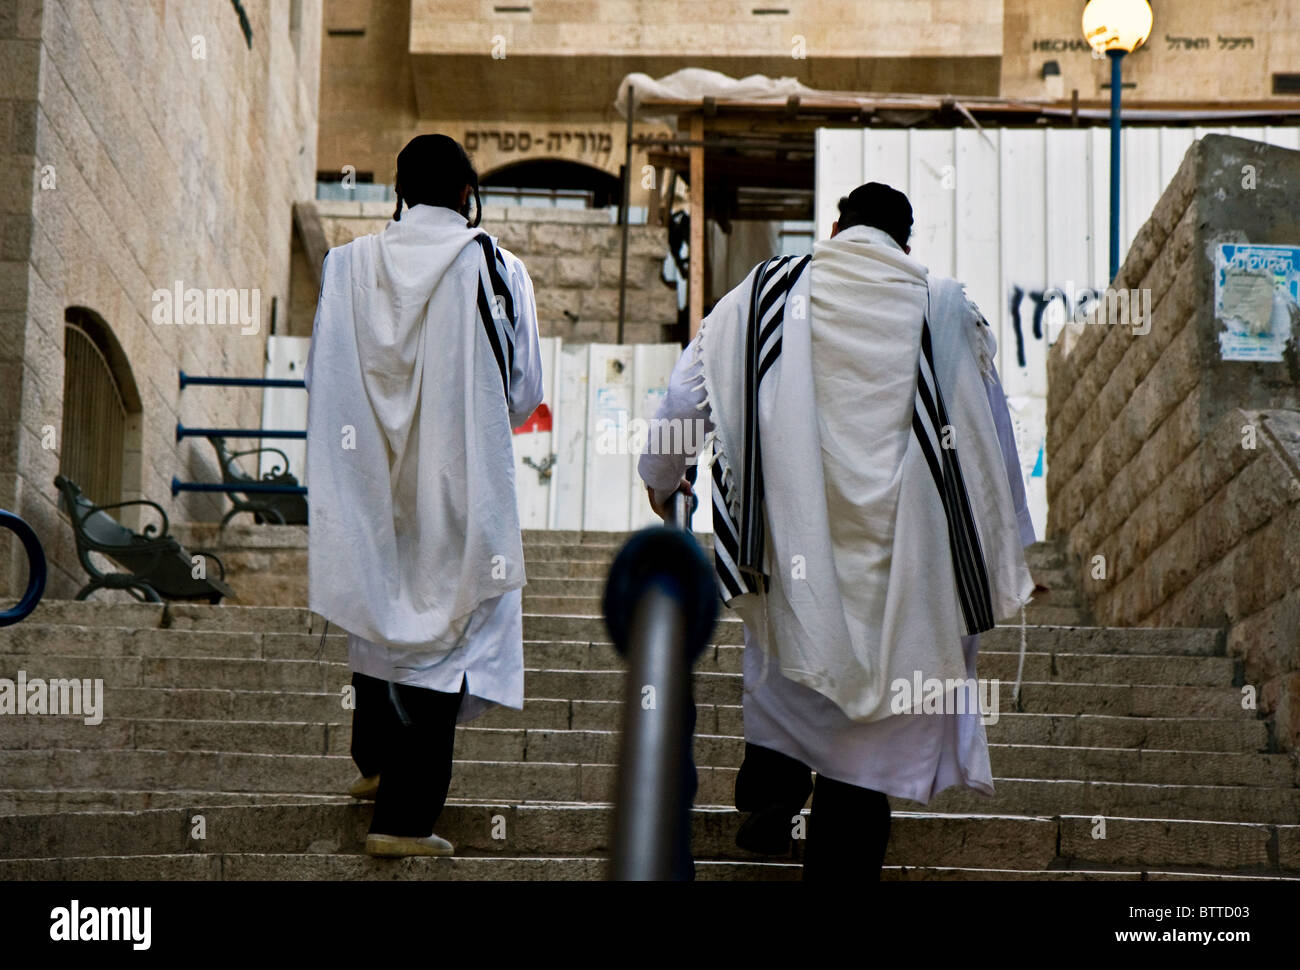 Pair of Jewish religious man with traditional clothes for prier going up the stairs at the old city of Jerusalem - Stock Image